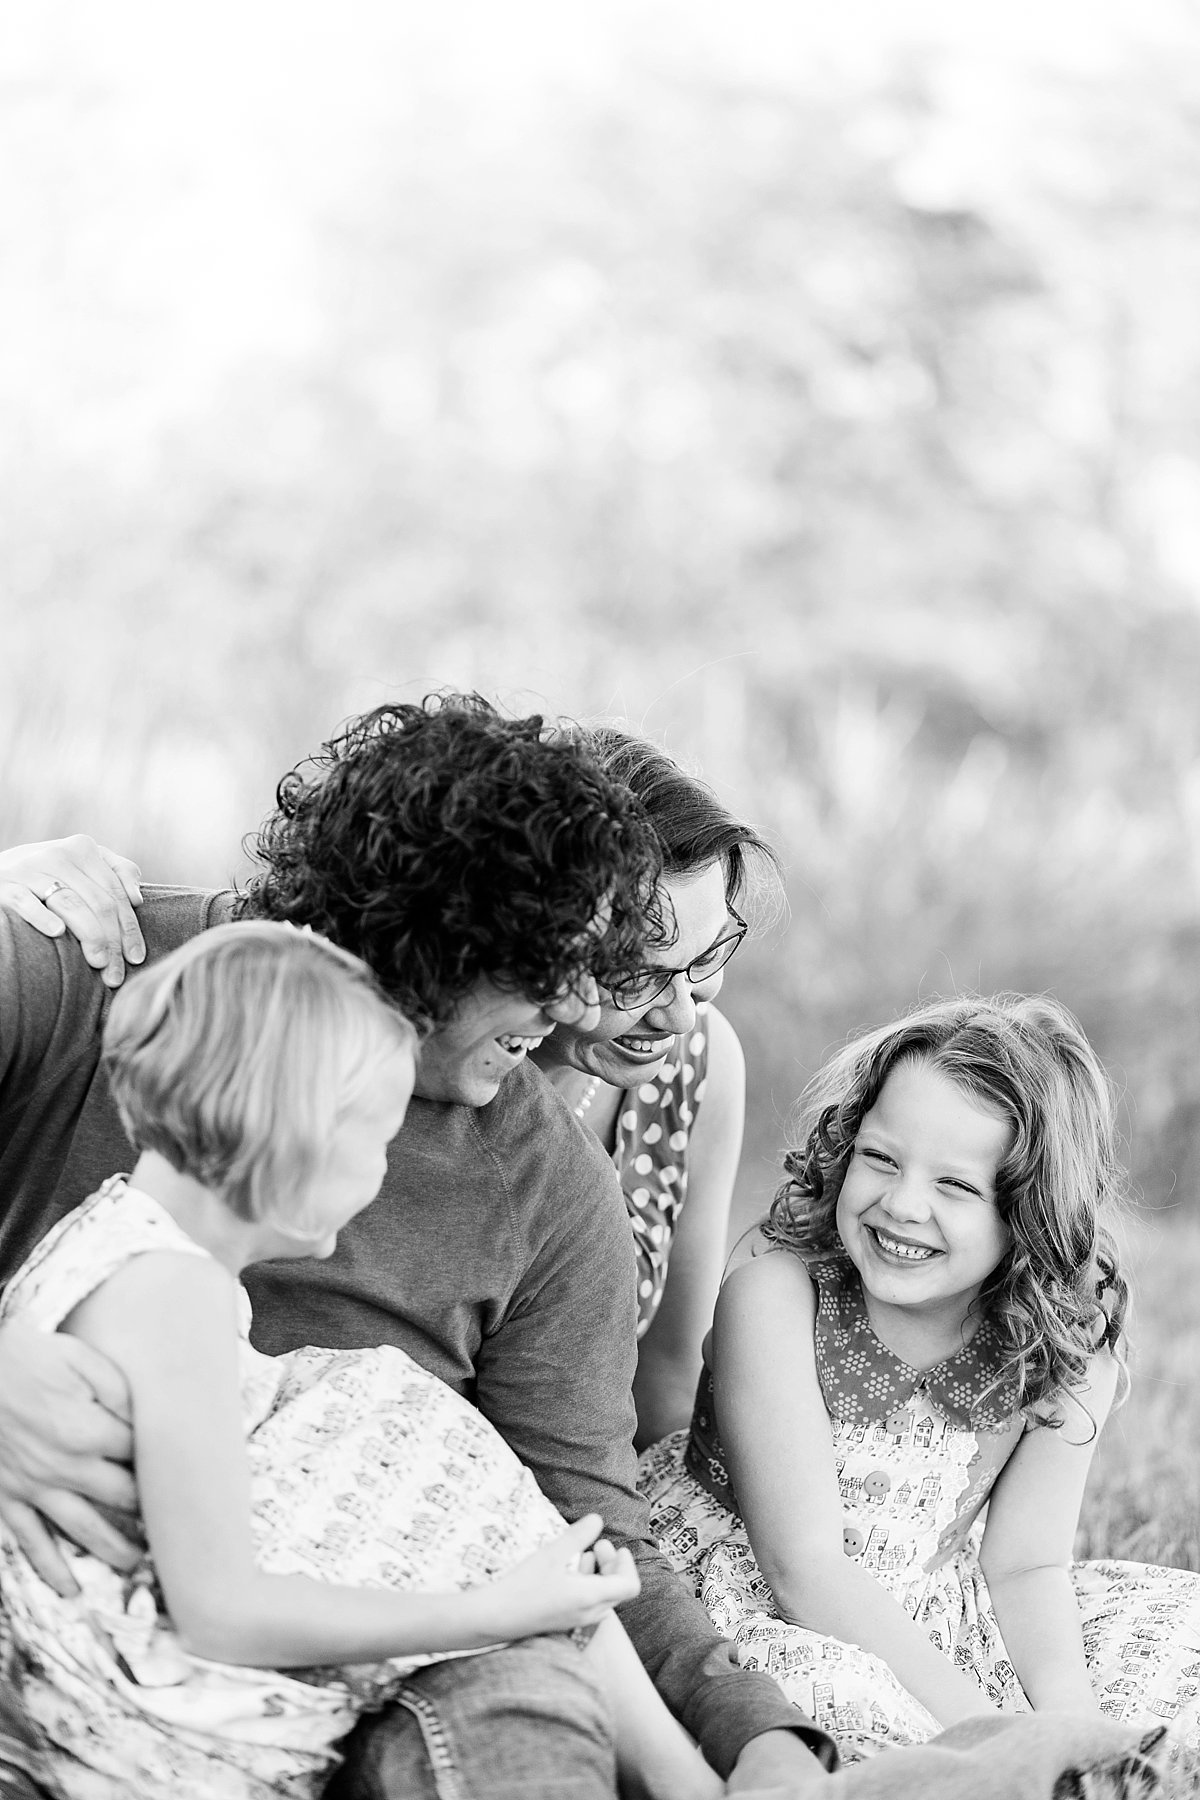 acres-of-hope-photography-kansas-city-family-photography_0113